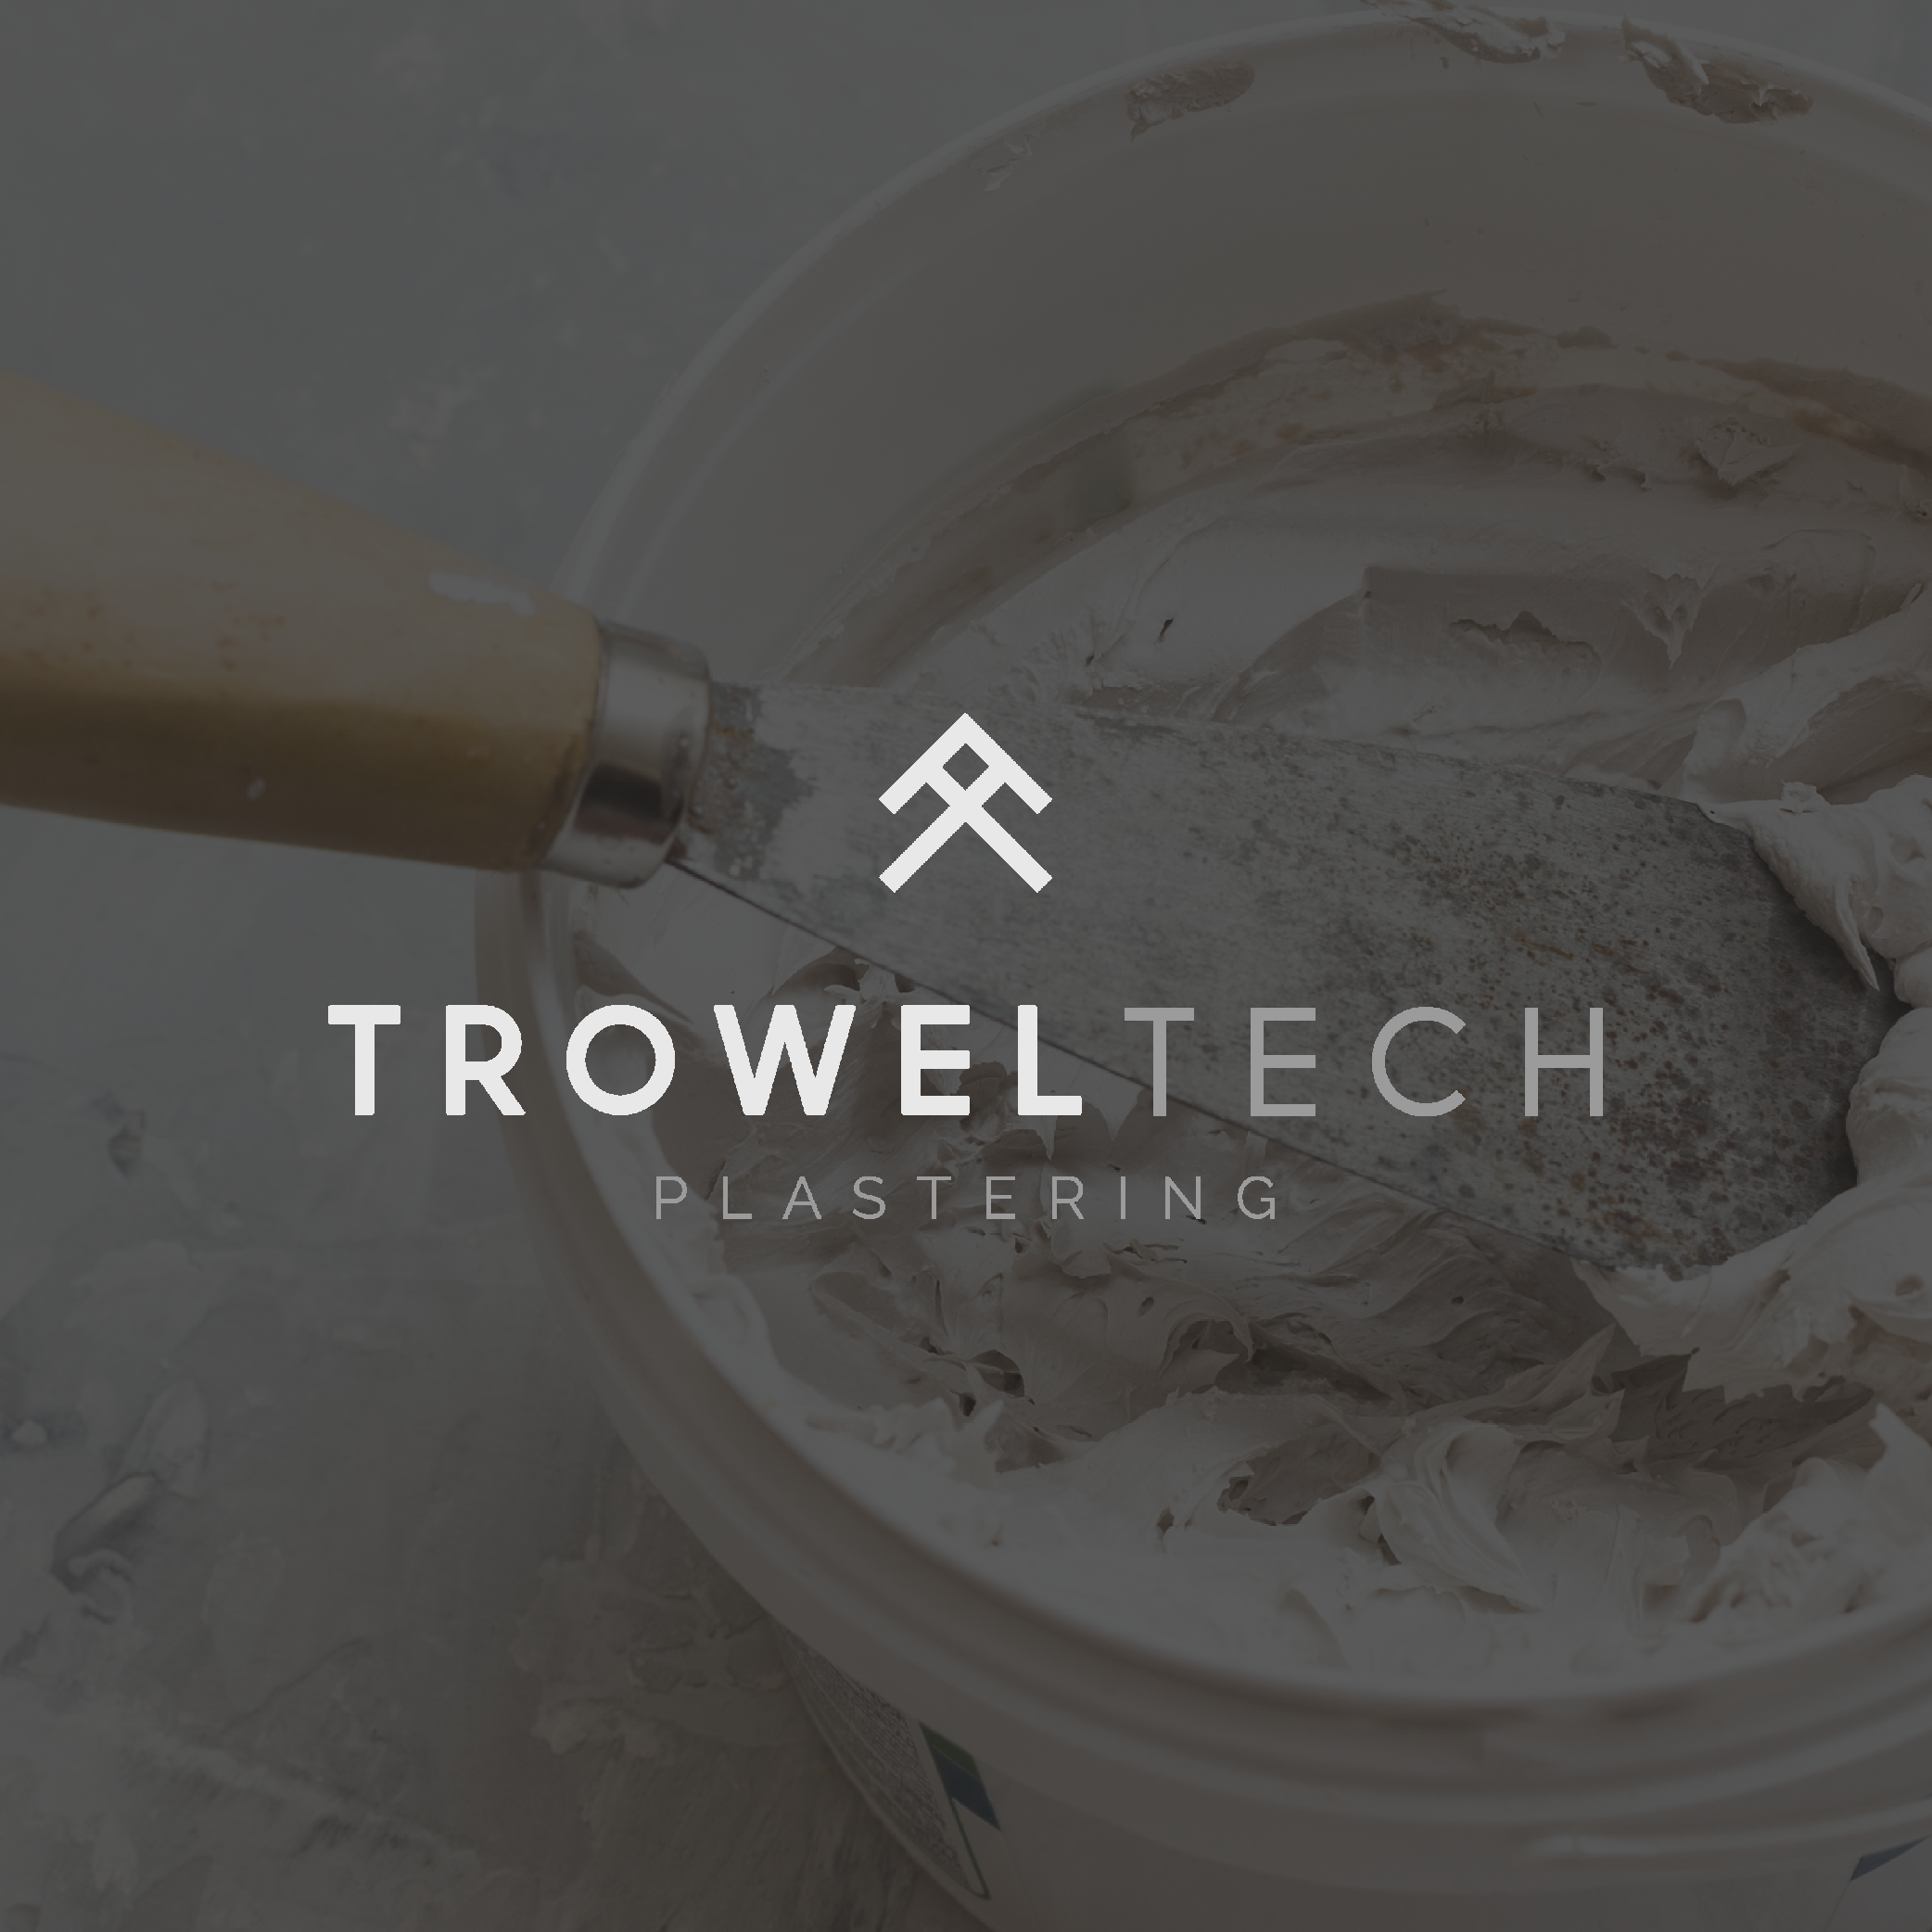 Trowel Tech